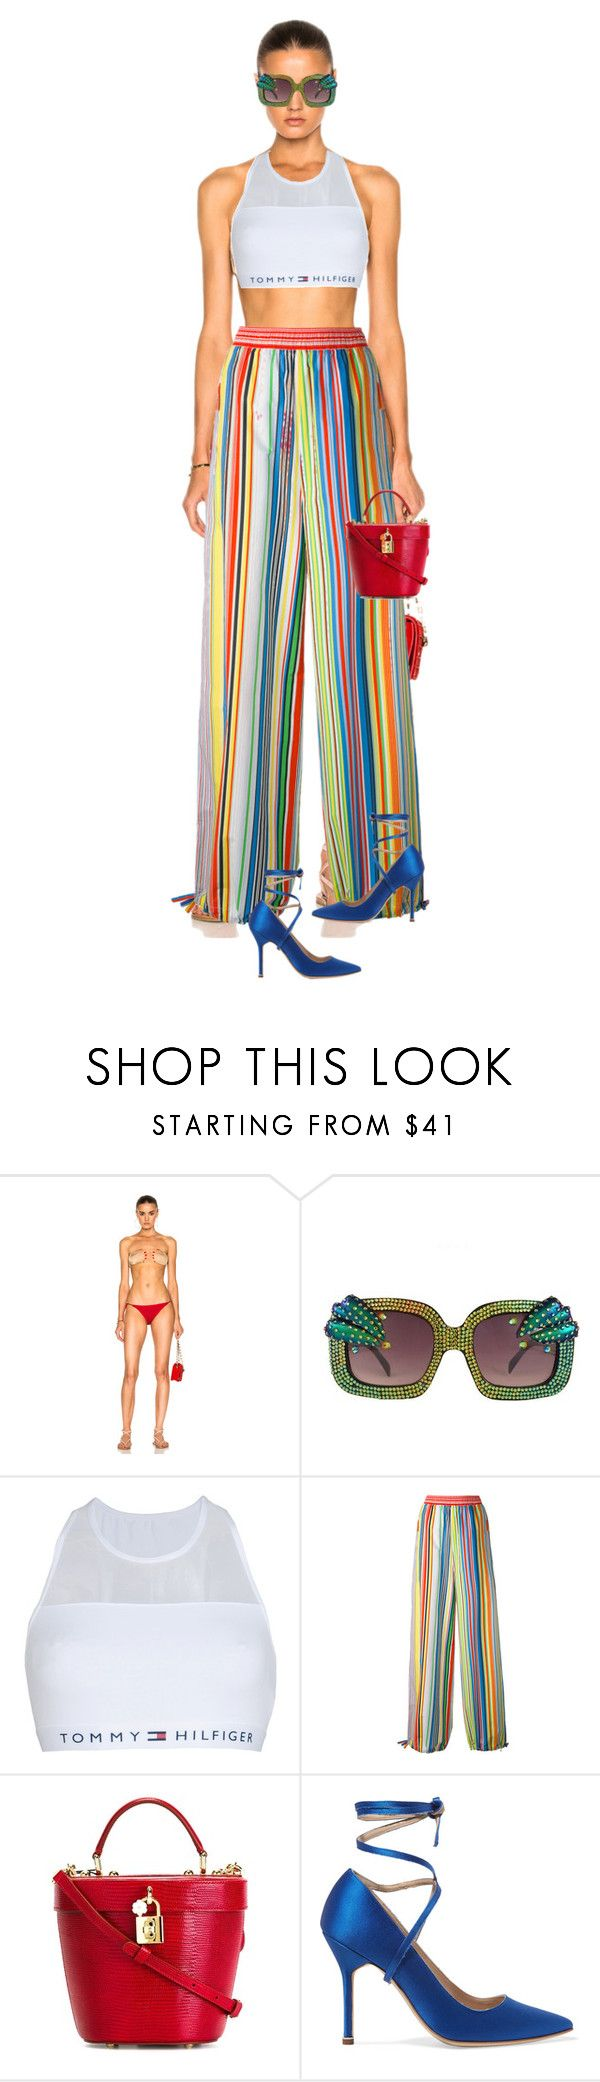 """""""Untitled #401"""" by fashionmahlo ❤ liked on Polyvore featuring ADRIANA DEGREAS, Tommy Hilfiger, Ports 1961, Dolce&Gabbana and Vetements"""